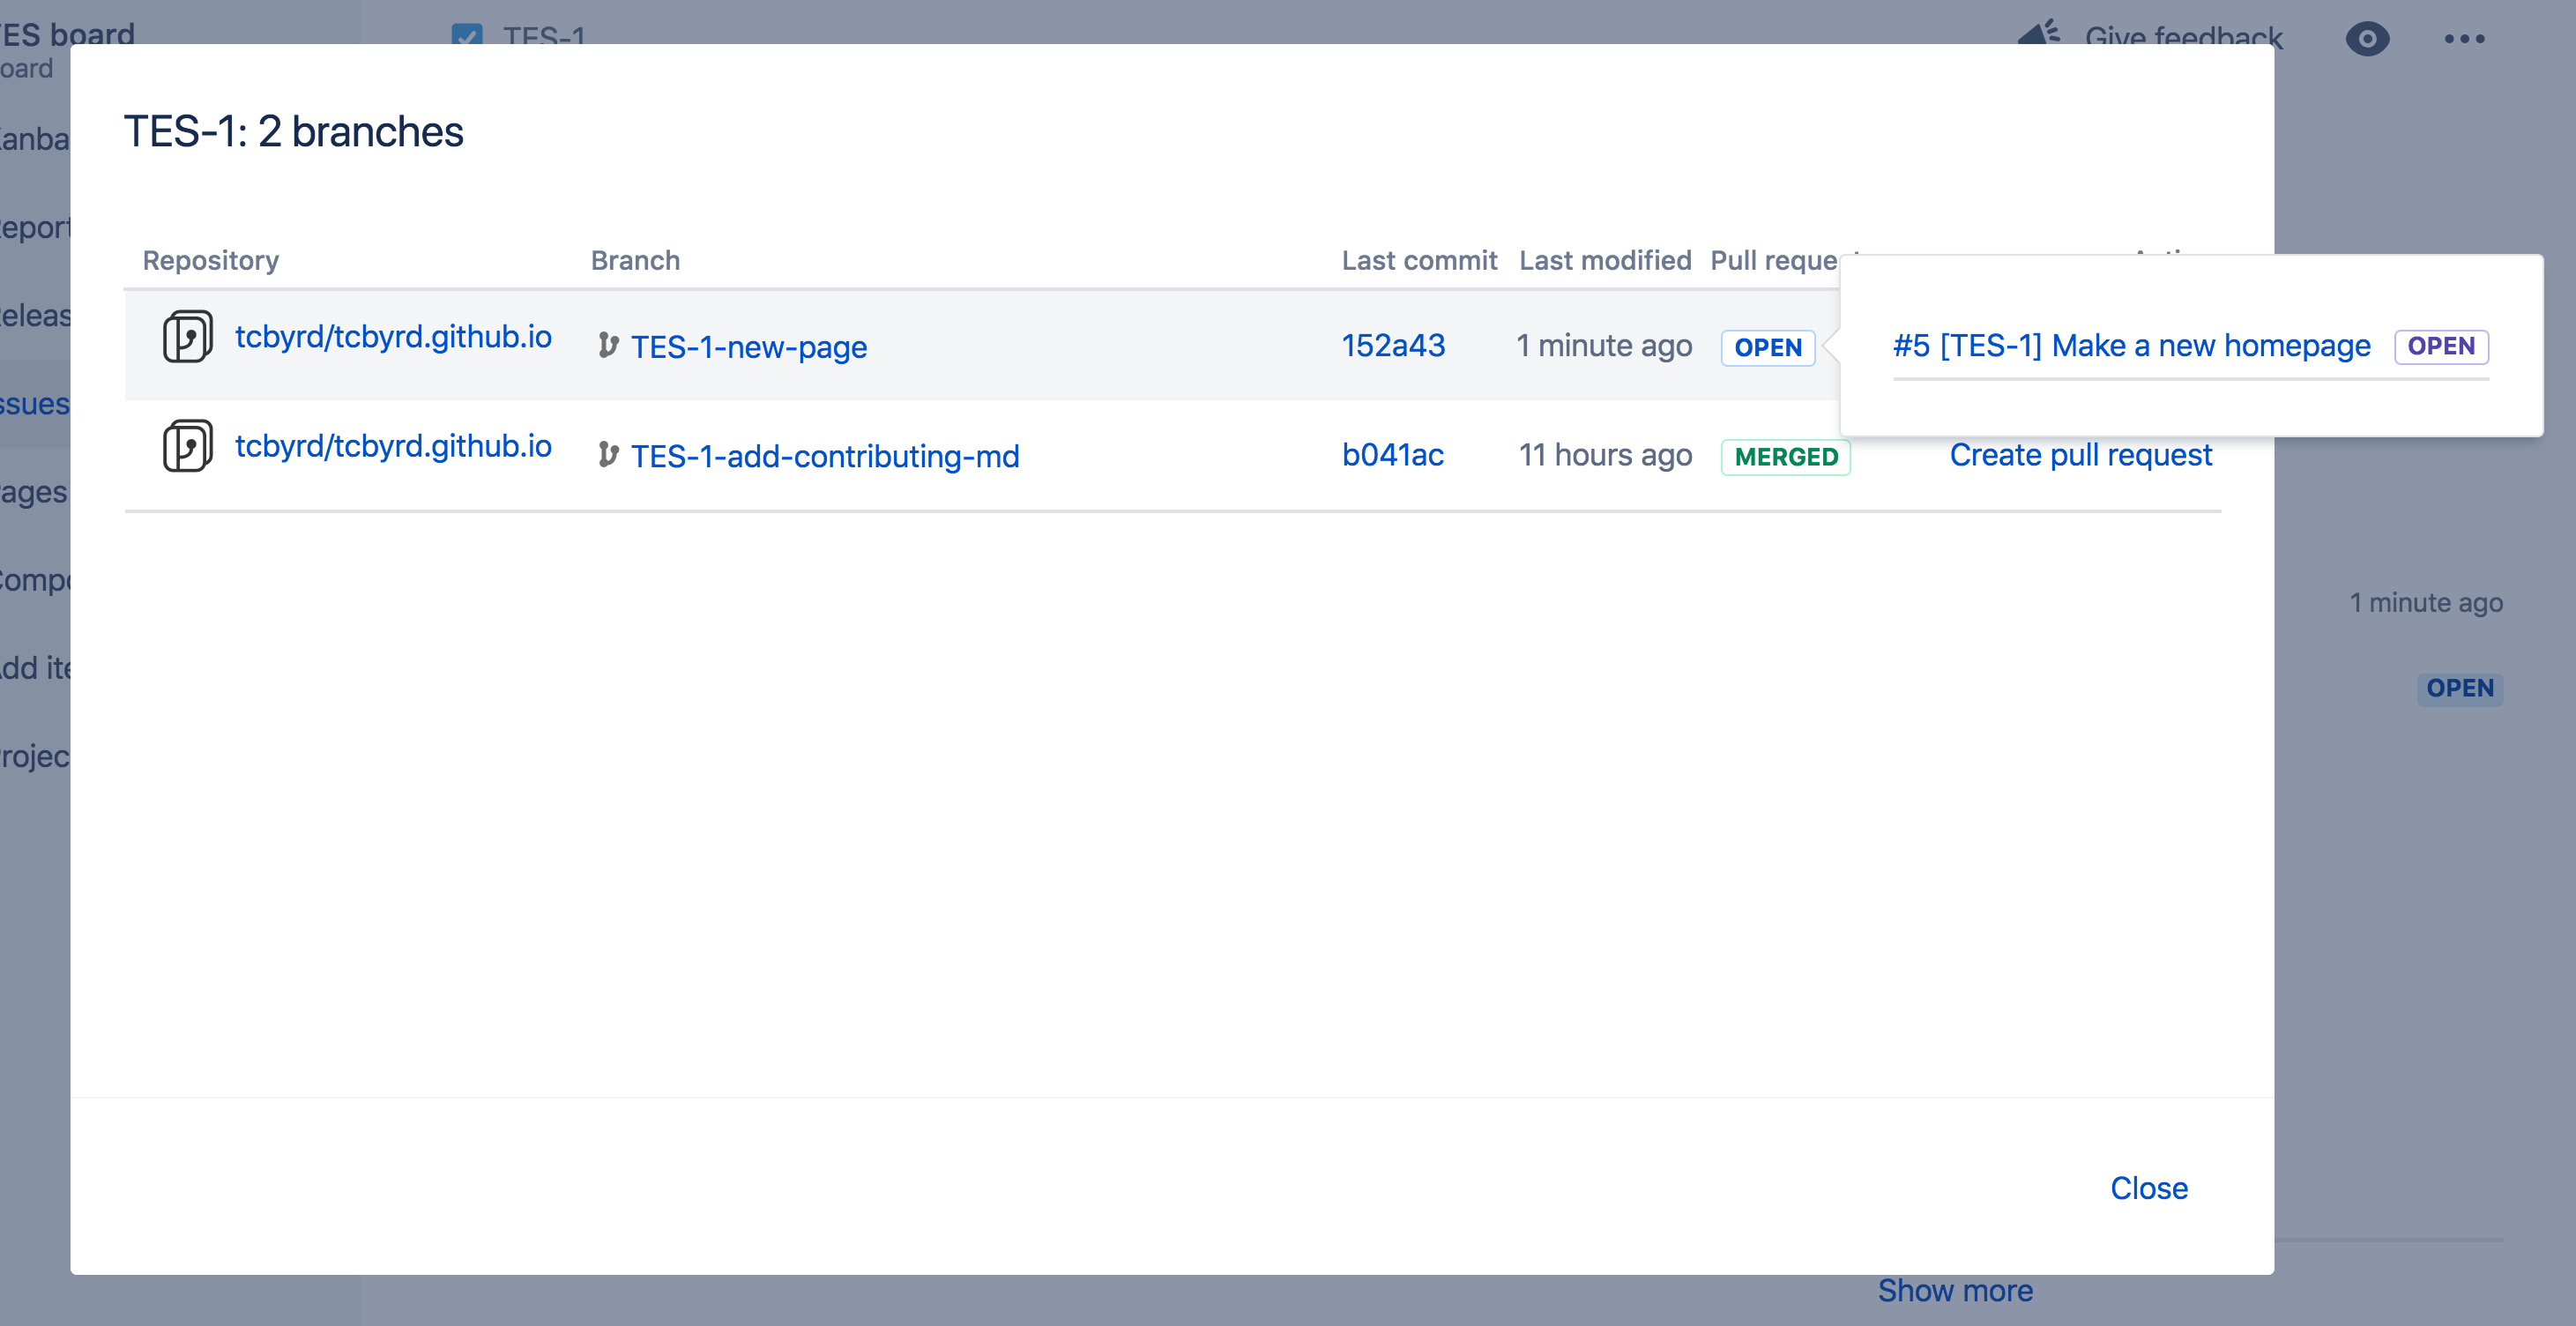 Screenshot of a Jira issue with pull request details